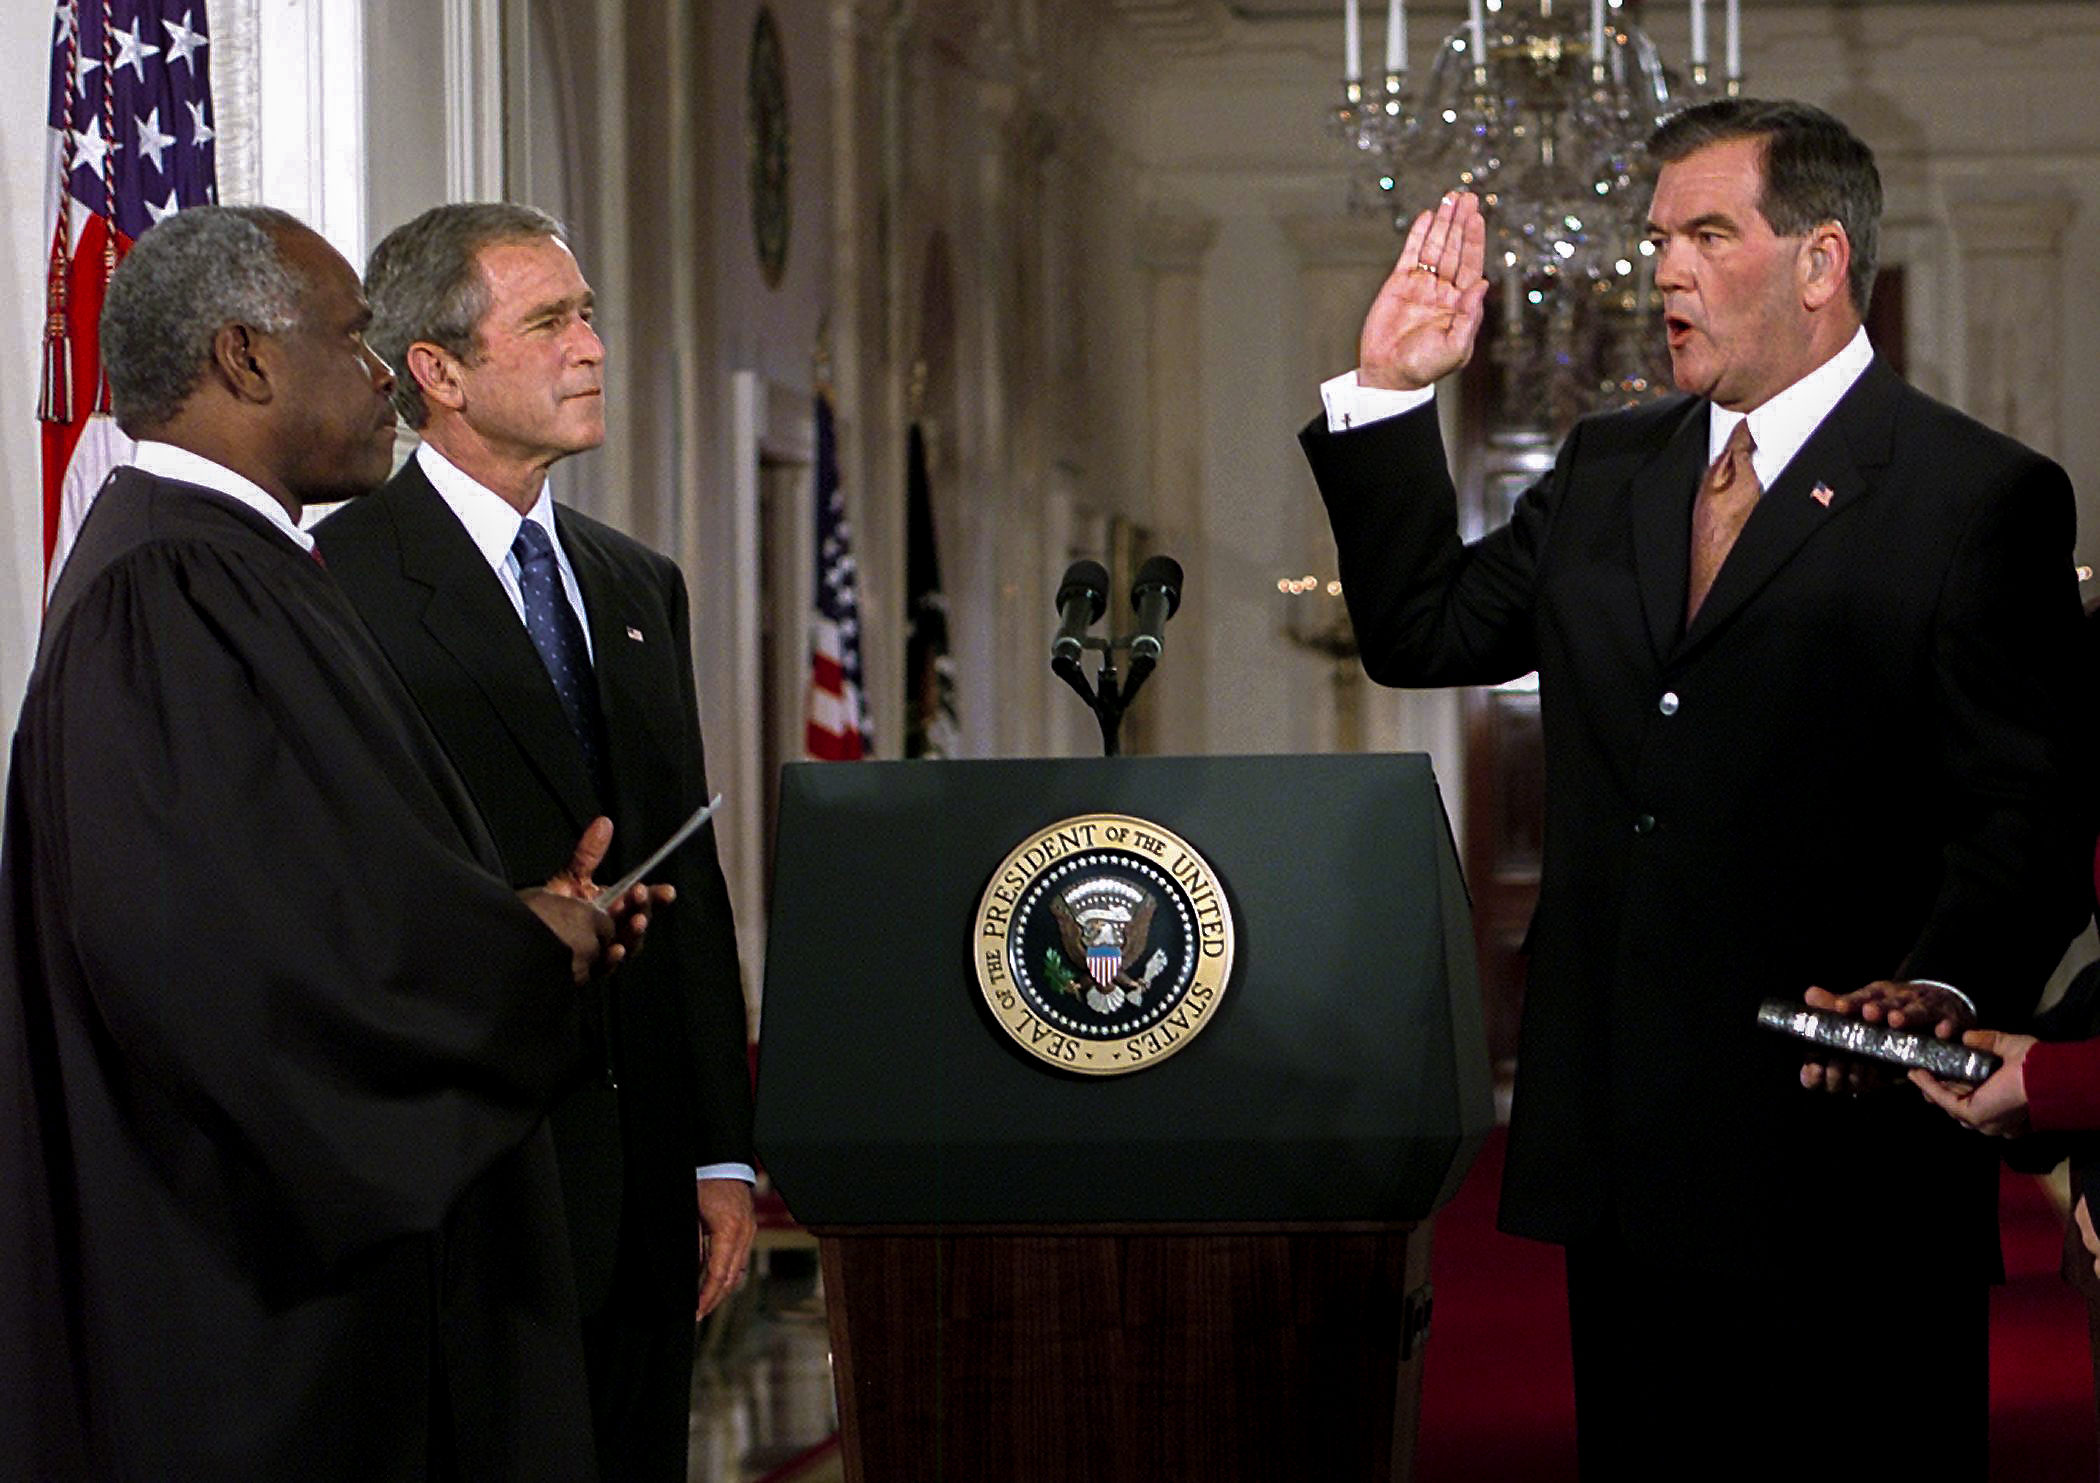 Former Pennsylvania governor Tom Ridge (R) is sworn-in as Director of the newly created Cabinet-level position of the Office of Homeland Security 08 October, 2001 by Supreme Court Justice Clarence Thomas (L) as US President George W. Bush watches in the East Room of the White House in Washington, DC. The new position was created by the president to deal with terrorism within US borders.   AFP Photo/Paul J. Richards (Photo credit should read PAUL J. RICHARDS/AFP via Getty Images)